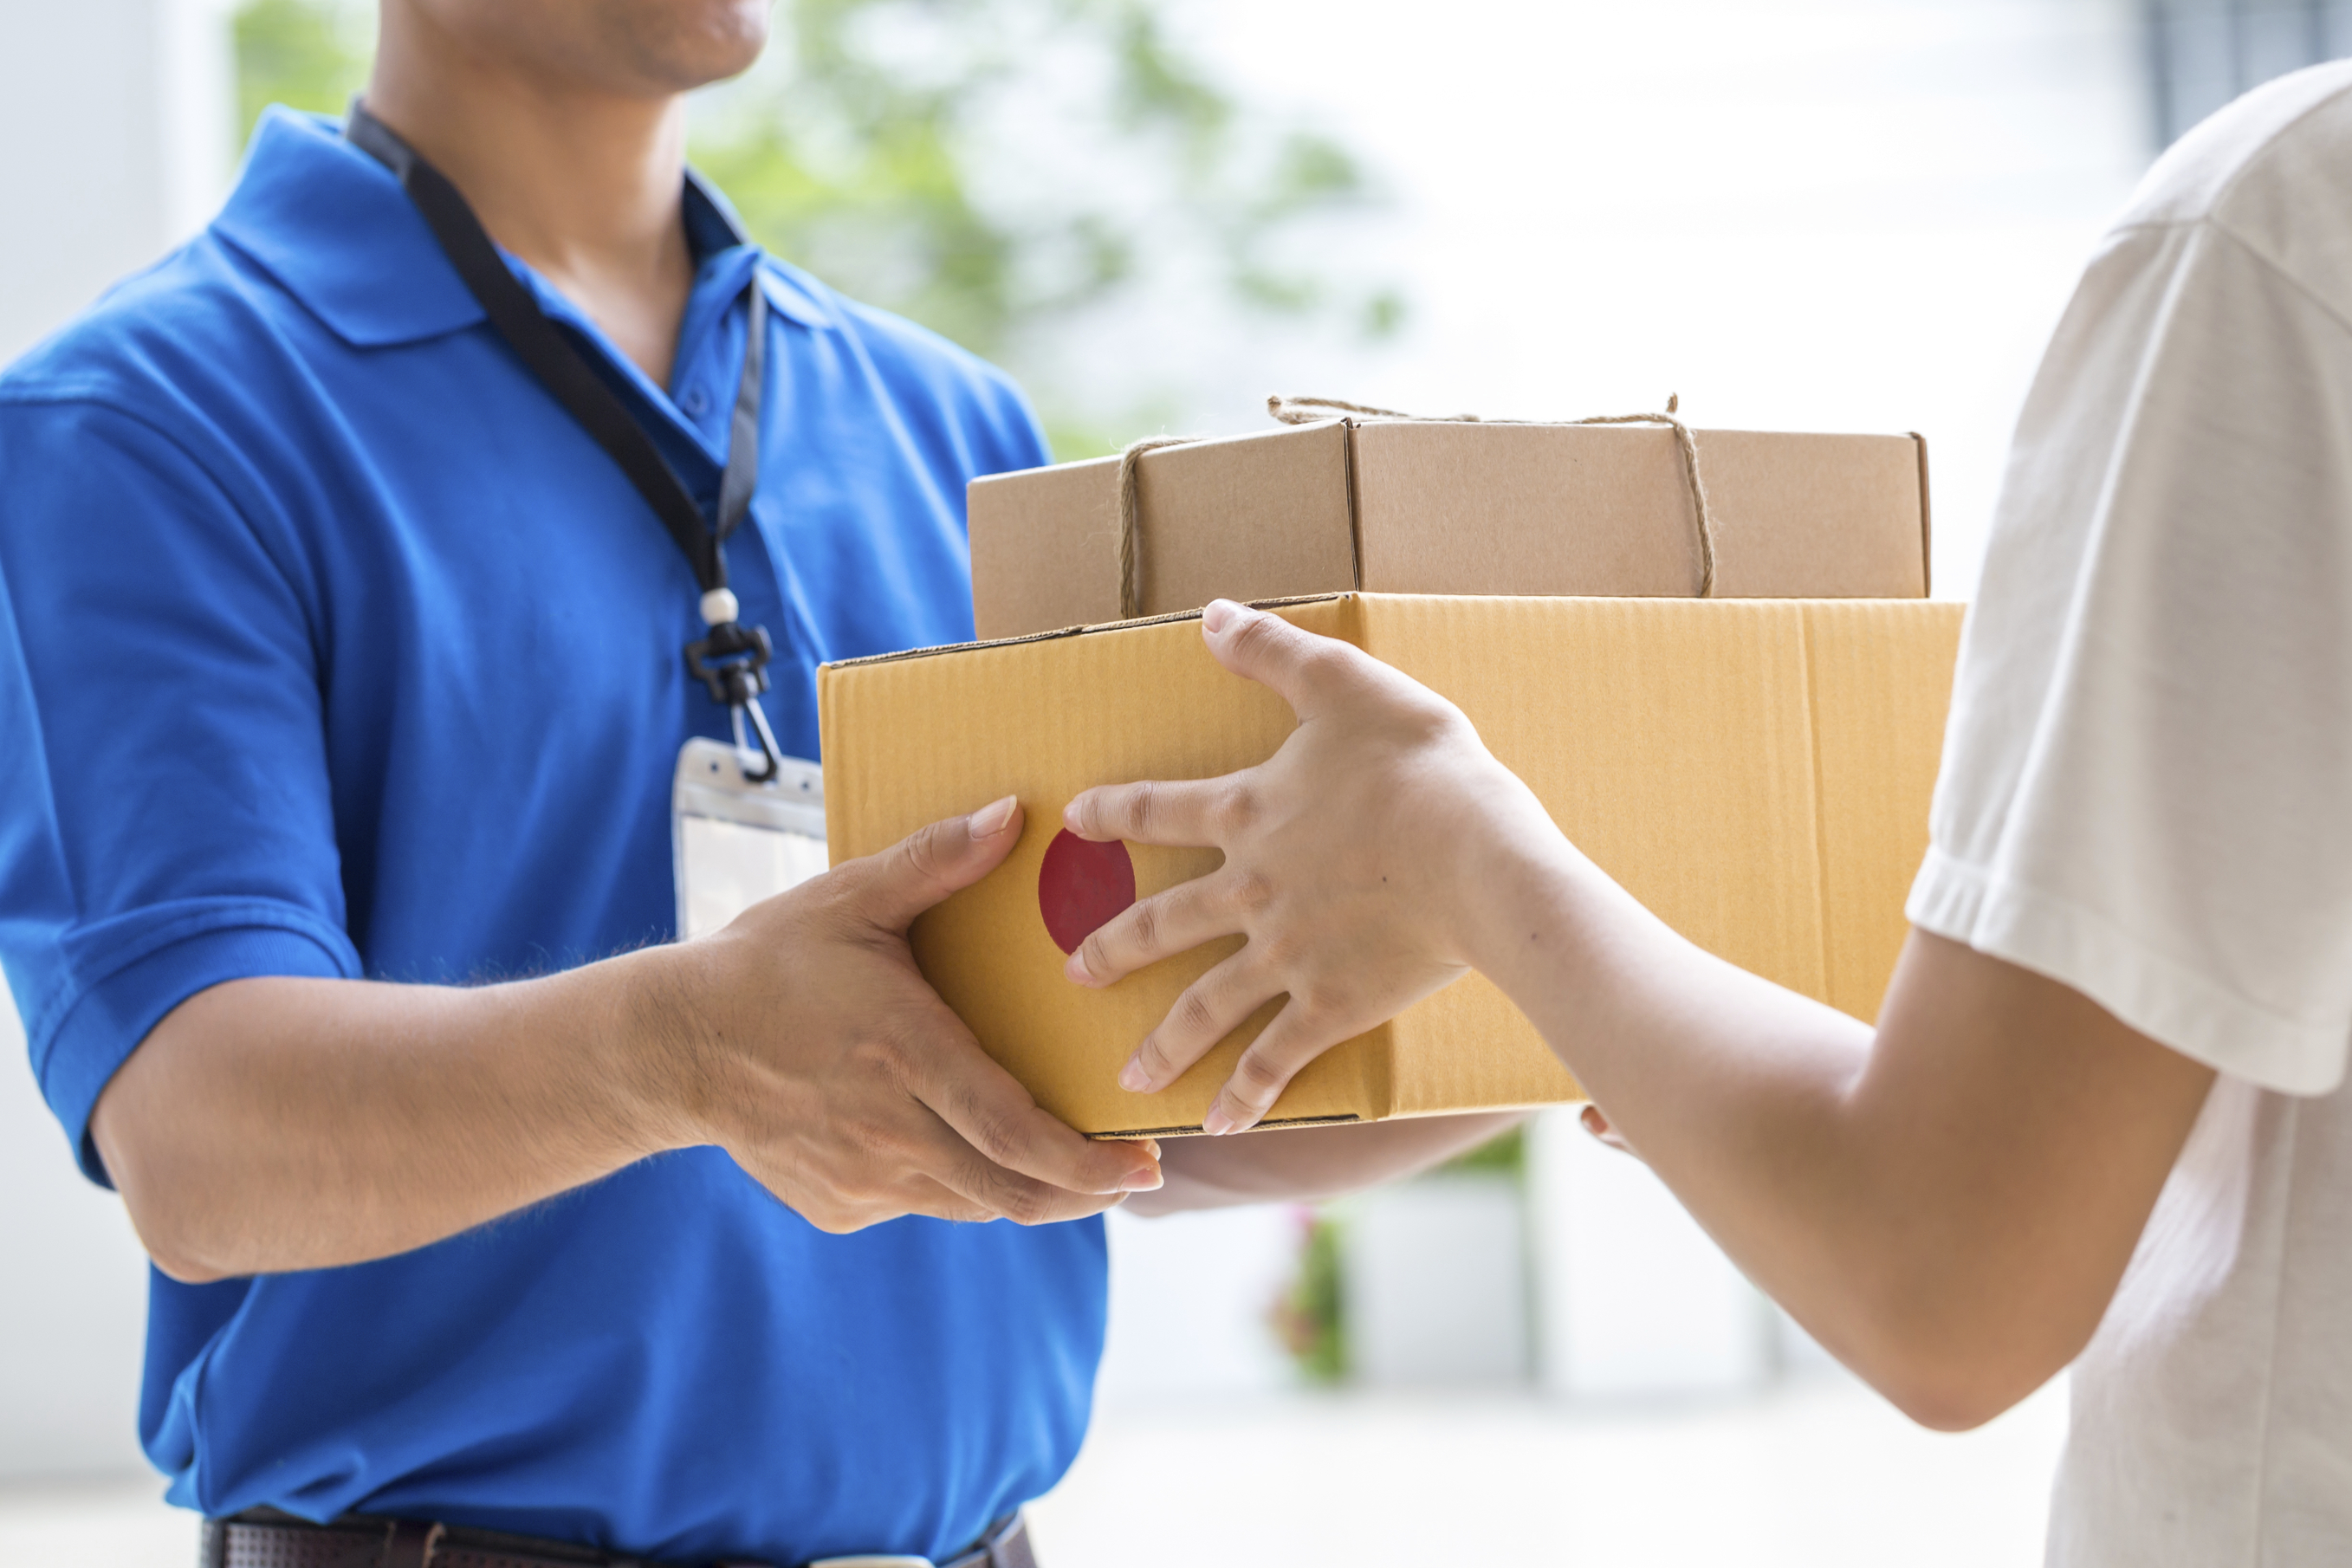 myHermes Small parcel collection by courier